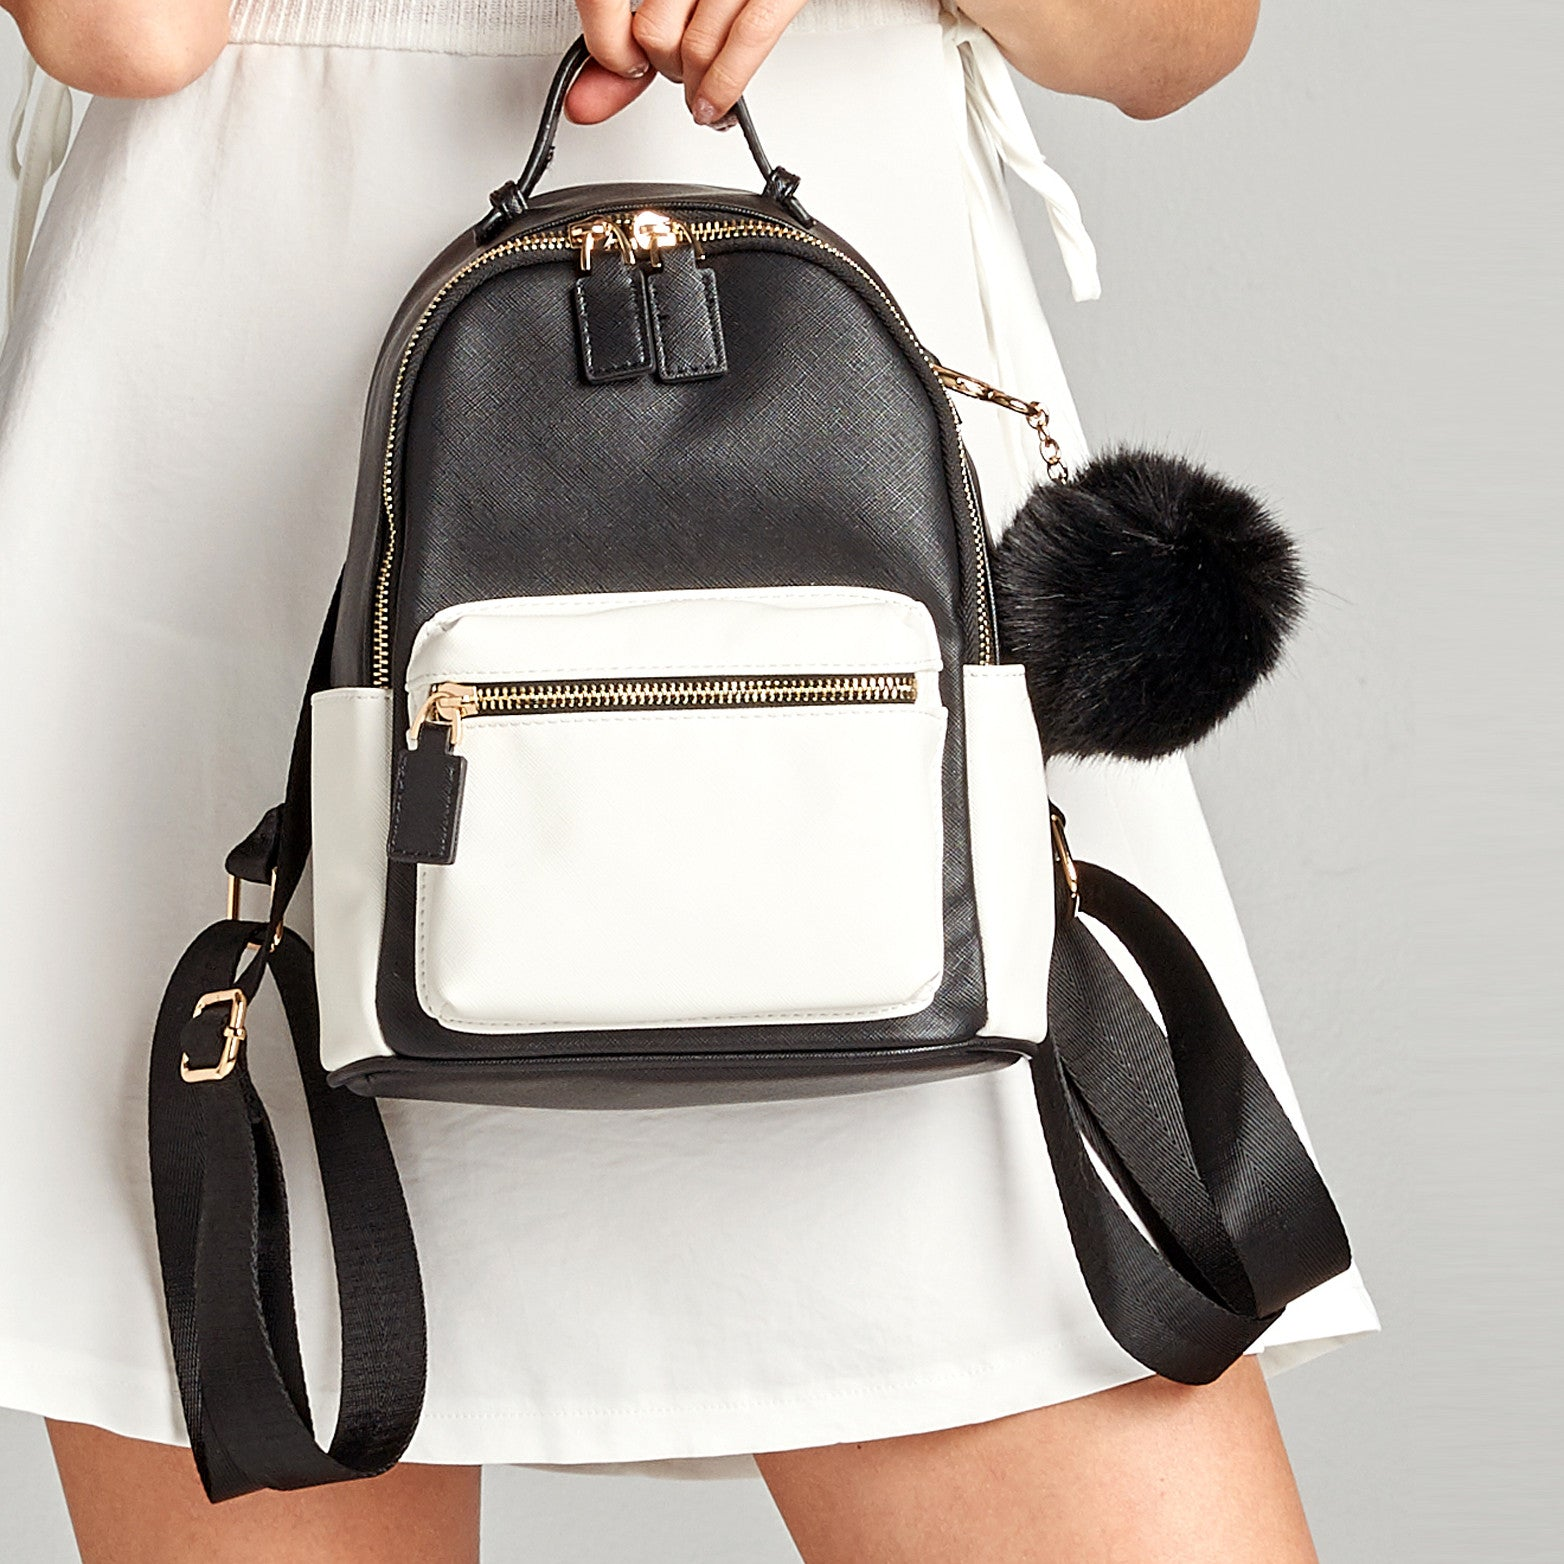 B&W Faux Leather Backpack